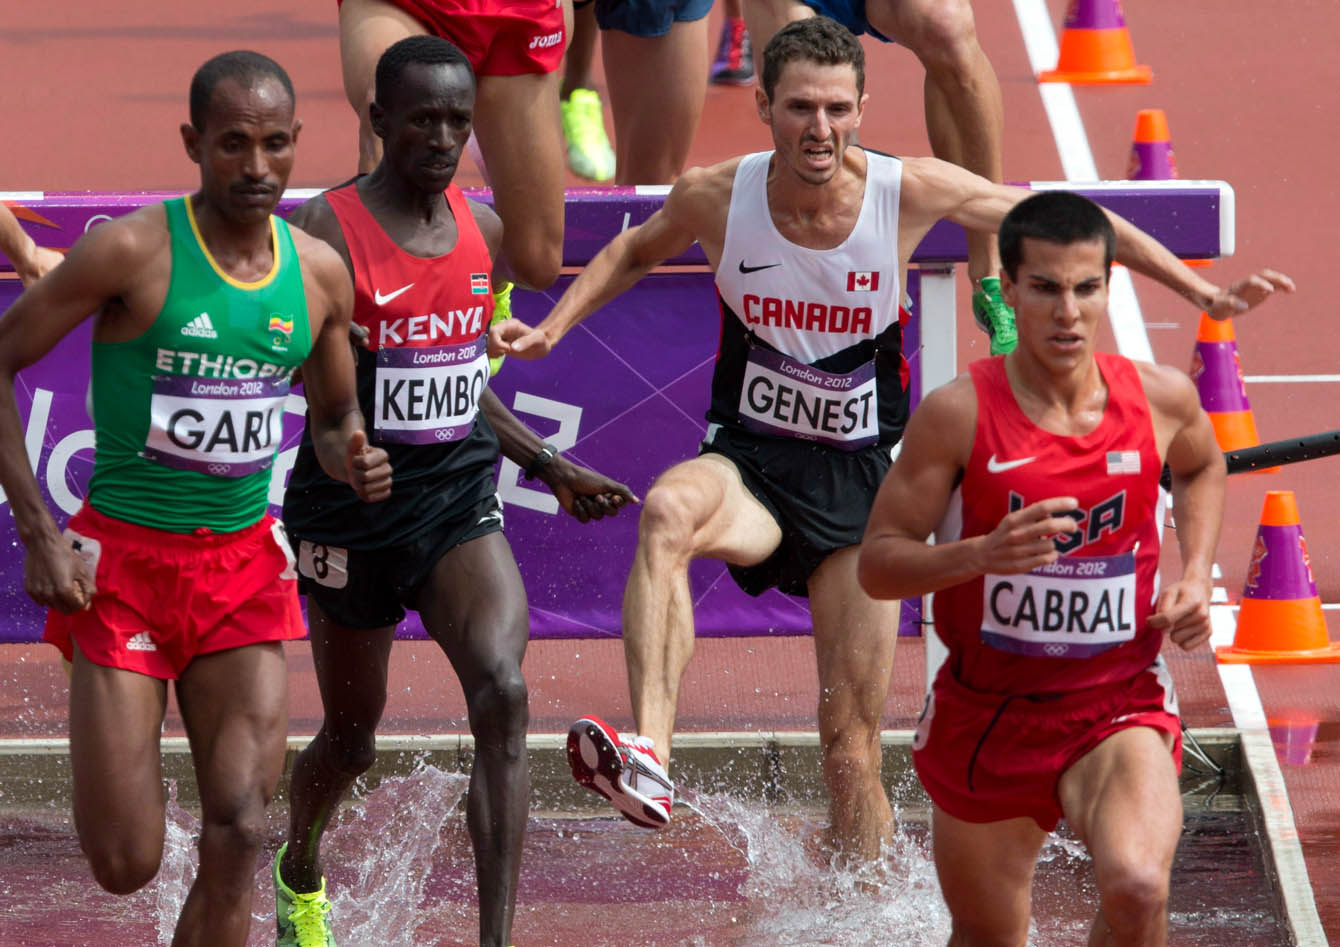 Alex Genest in the London 2012 Olympic steeplechase.